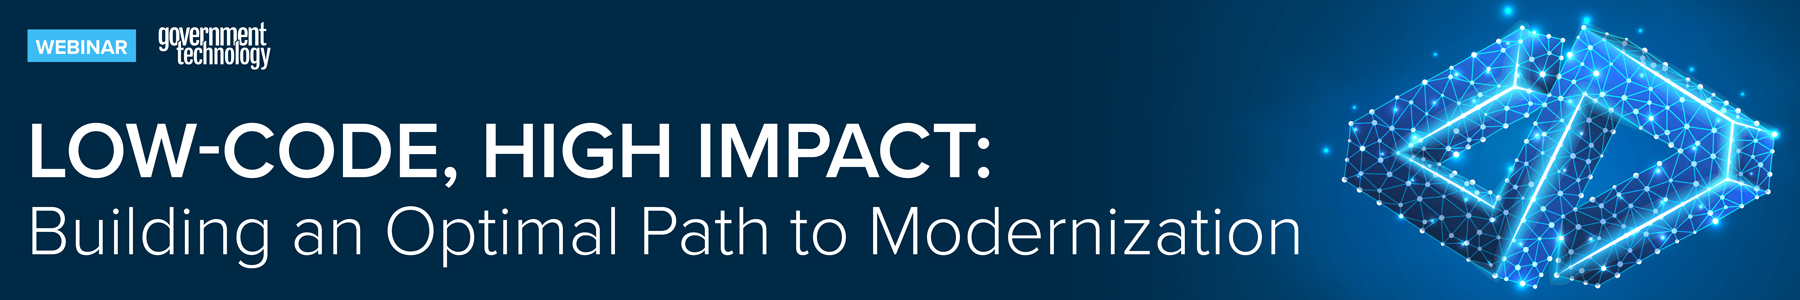 Low-Code, High Impact: Building an Optimal Path to Modernization